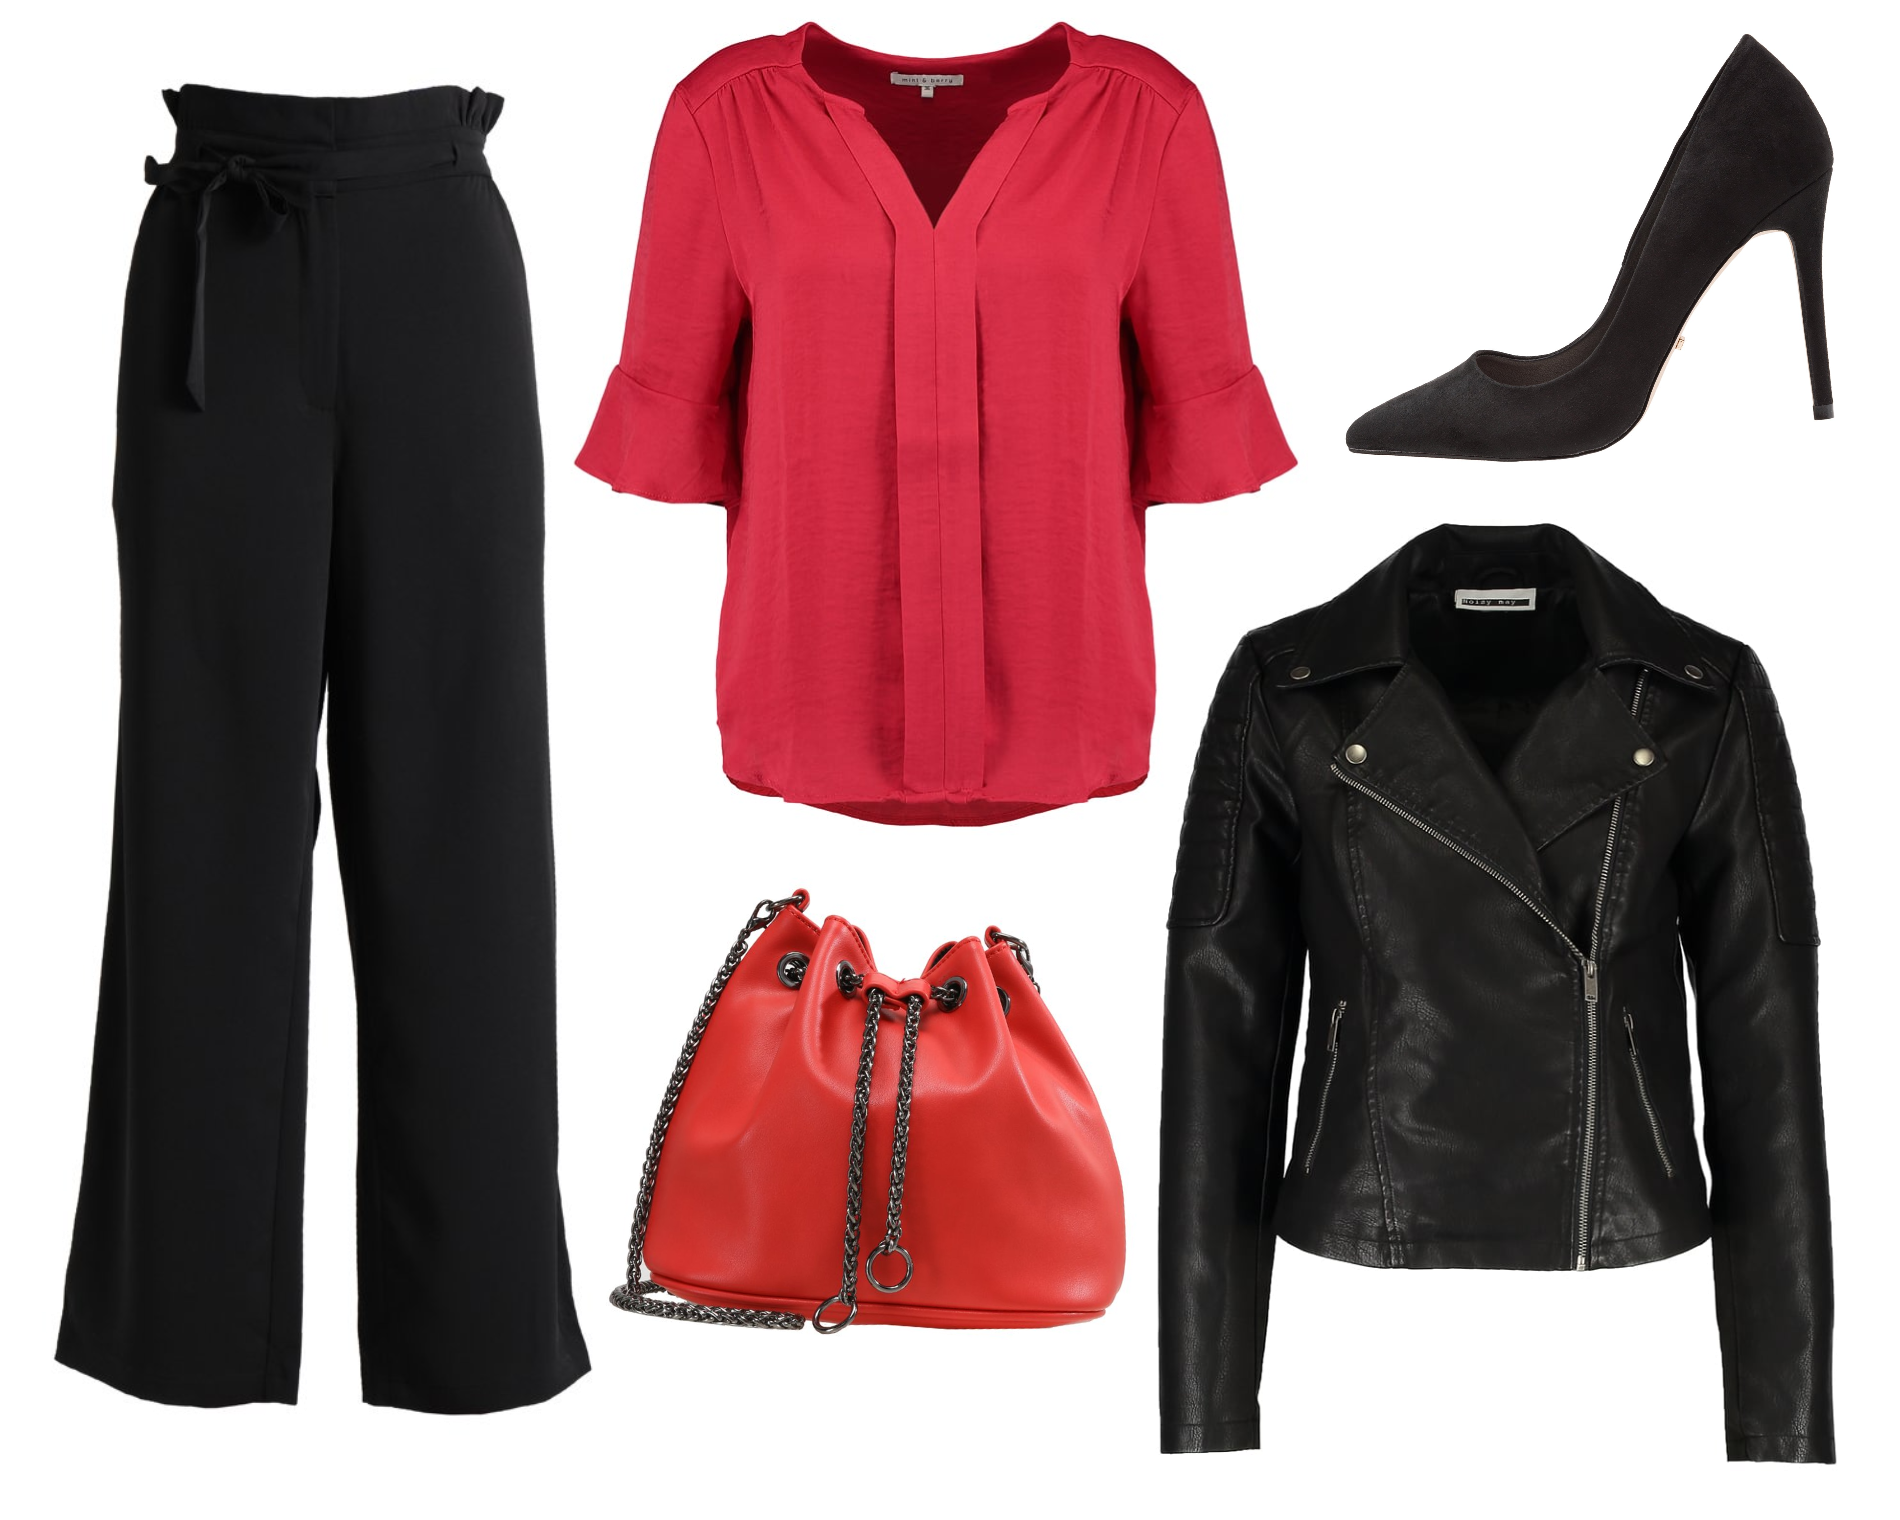 Outfit inspo / Black & red